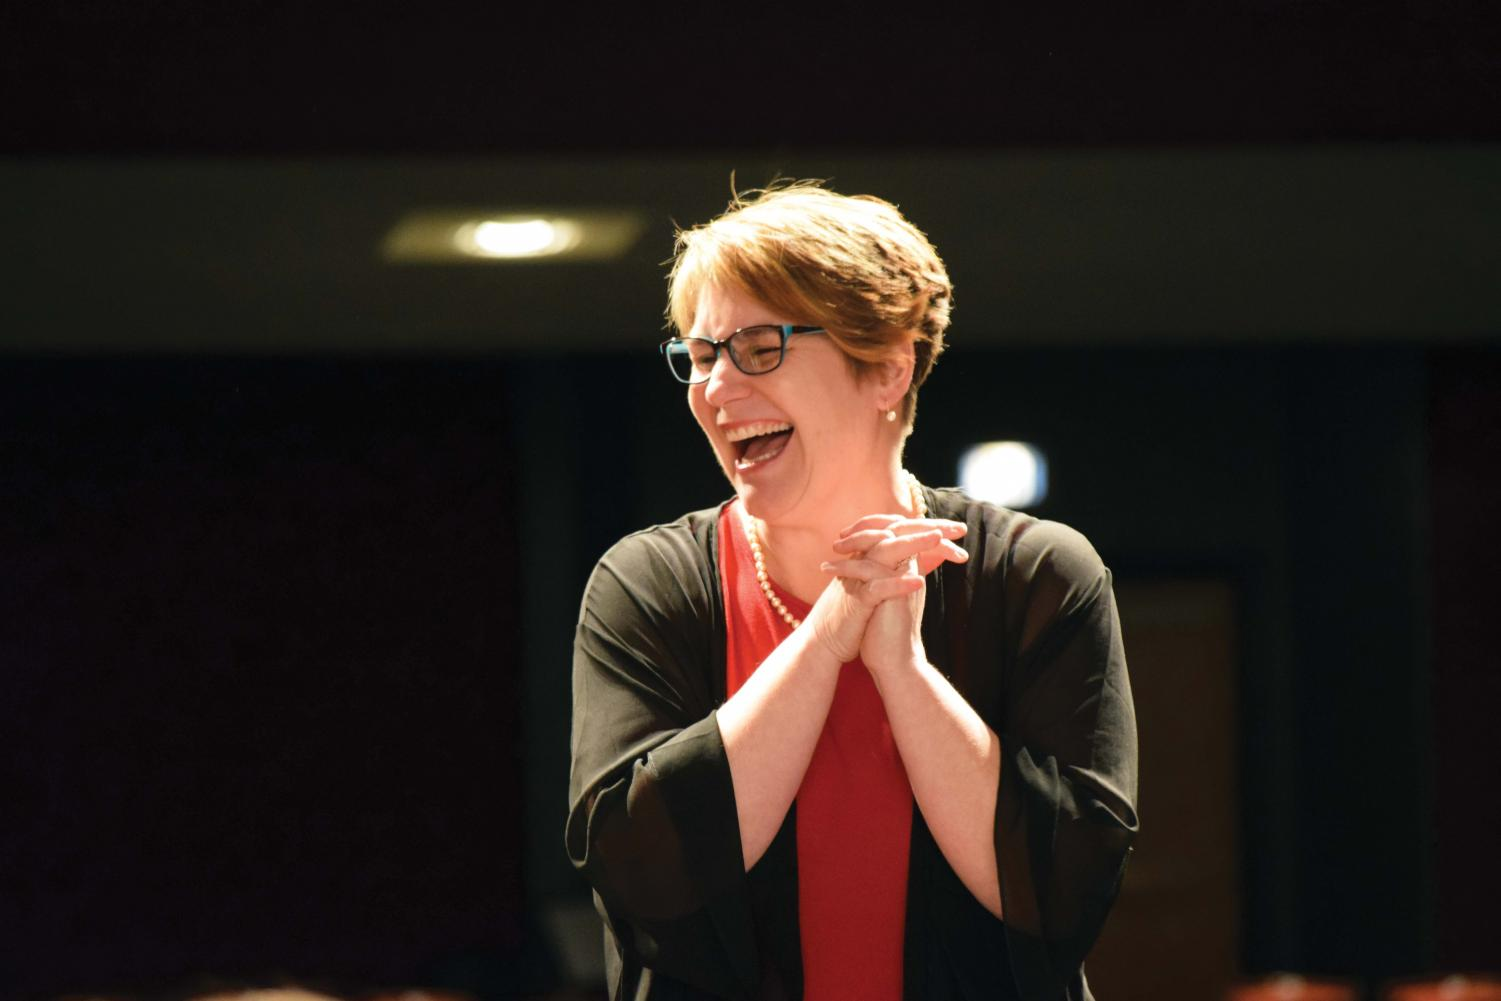 JOYFUL — Rachel Dirks enjoys conducting the orchestras at the February concert. She will begin her new position as director of orchestras at Kansas State University this fall.